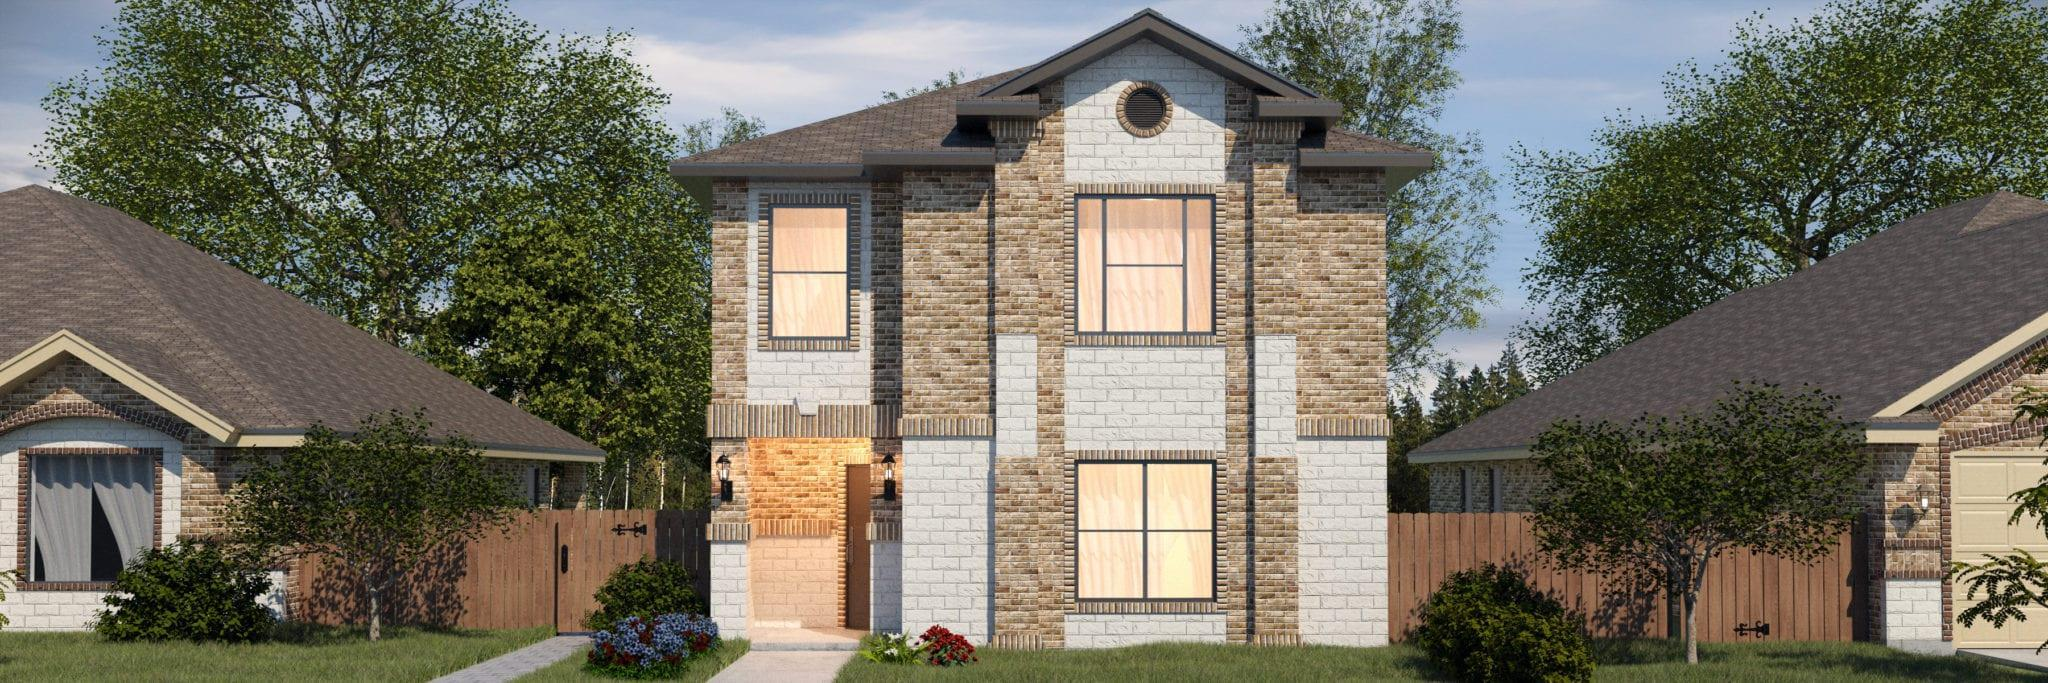 Exterior featured in the San Agustin By WestWind Homes in Laredo, TX